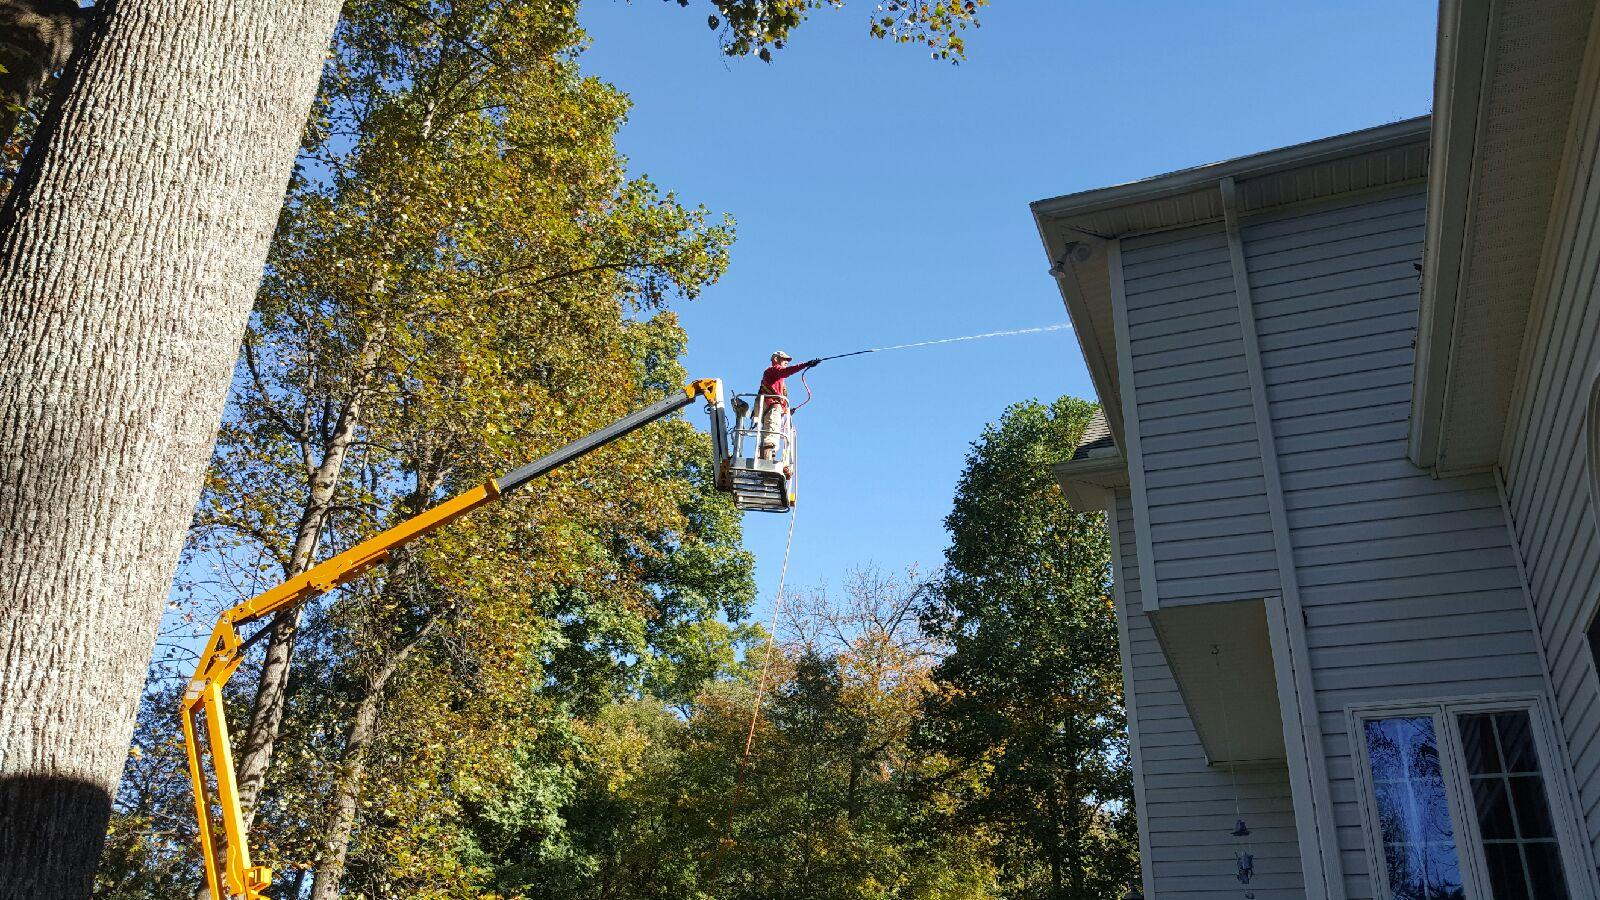 Boom Lift | Soft Wash Roof Service in Waynesboro PA